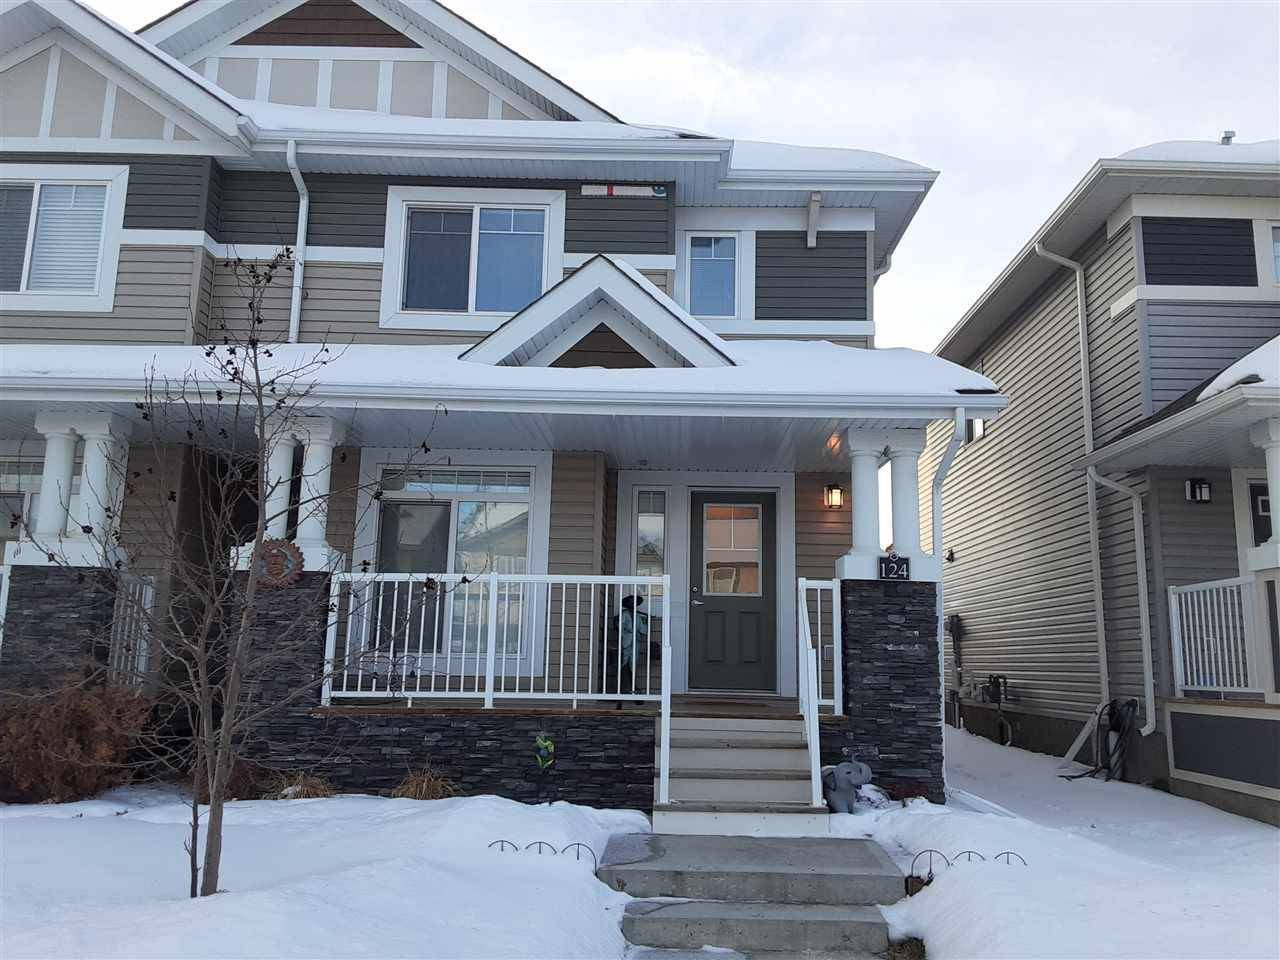 Townhouse for sale at 124 Cy Becker Blvd Nw Edmonton Alberta - MLS: E4186336